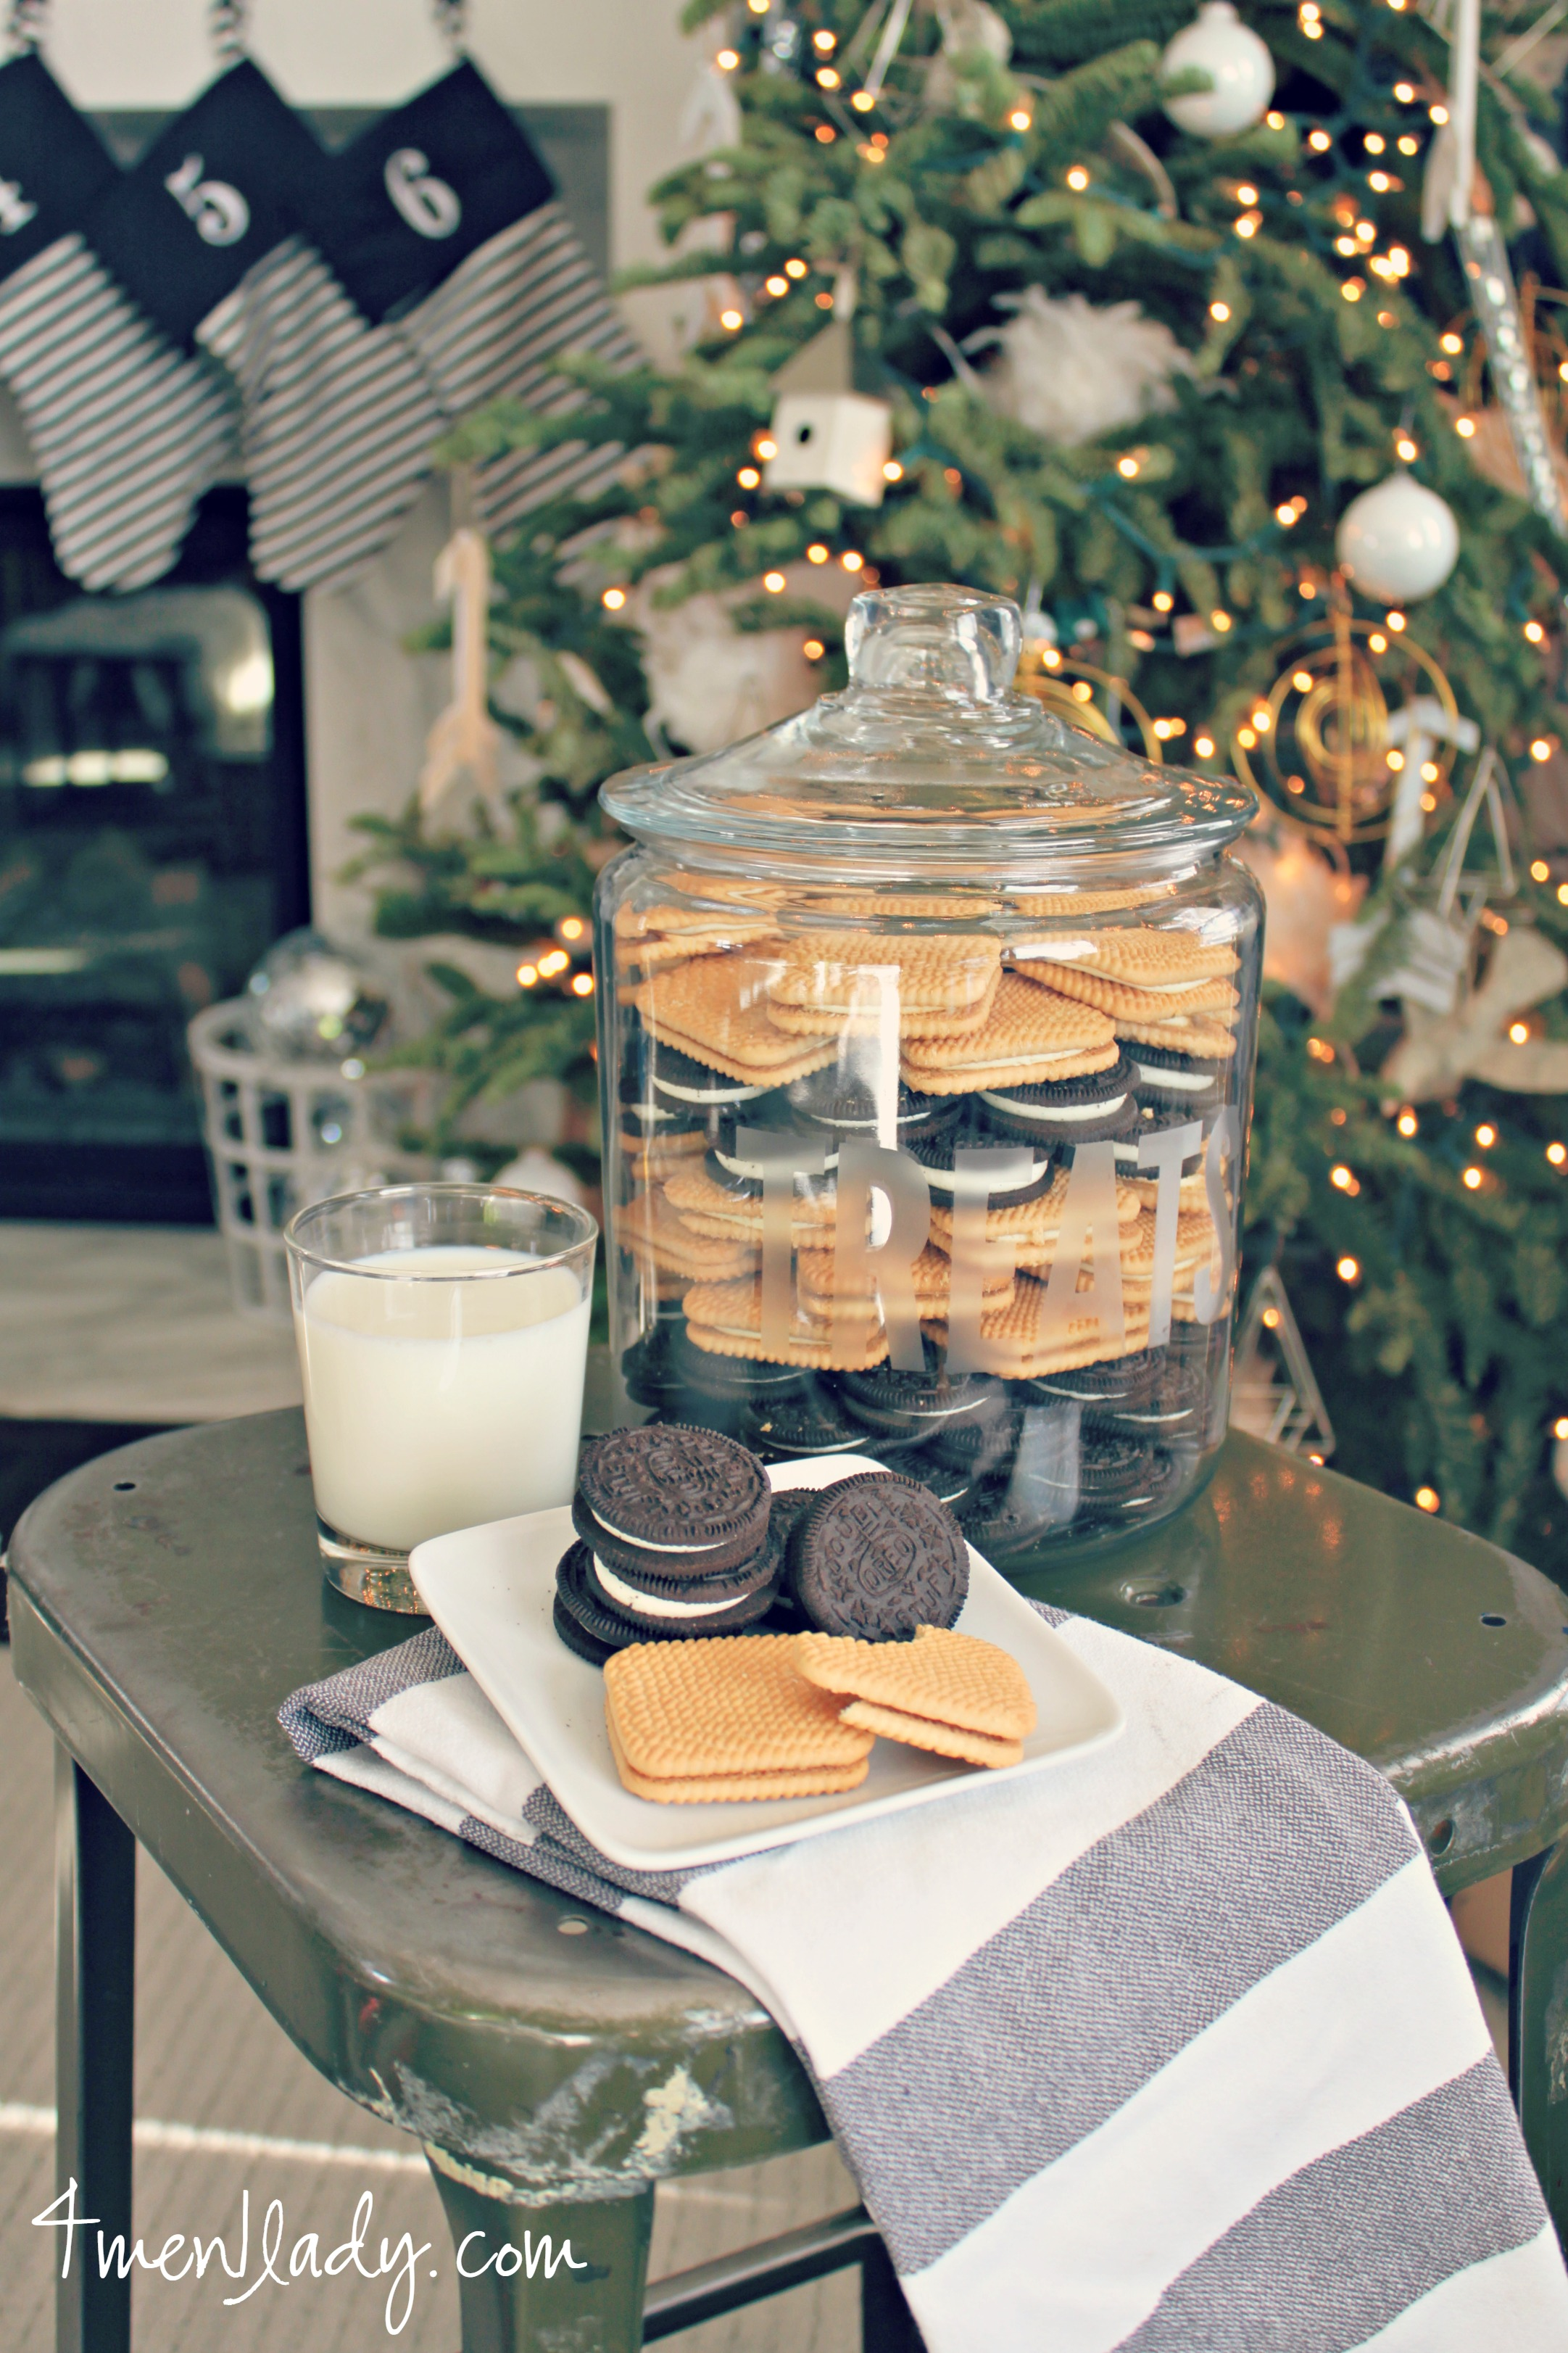 glass etched cookie jar diy 4 men 1 lady blog